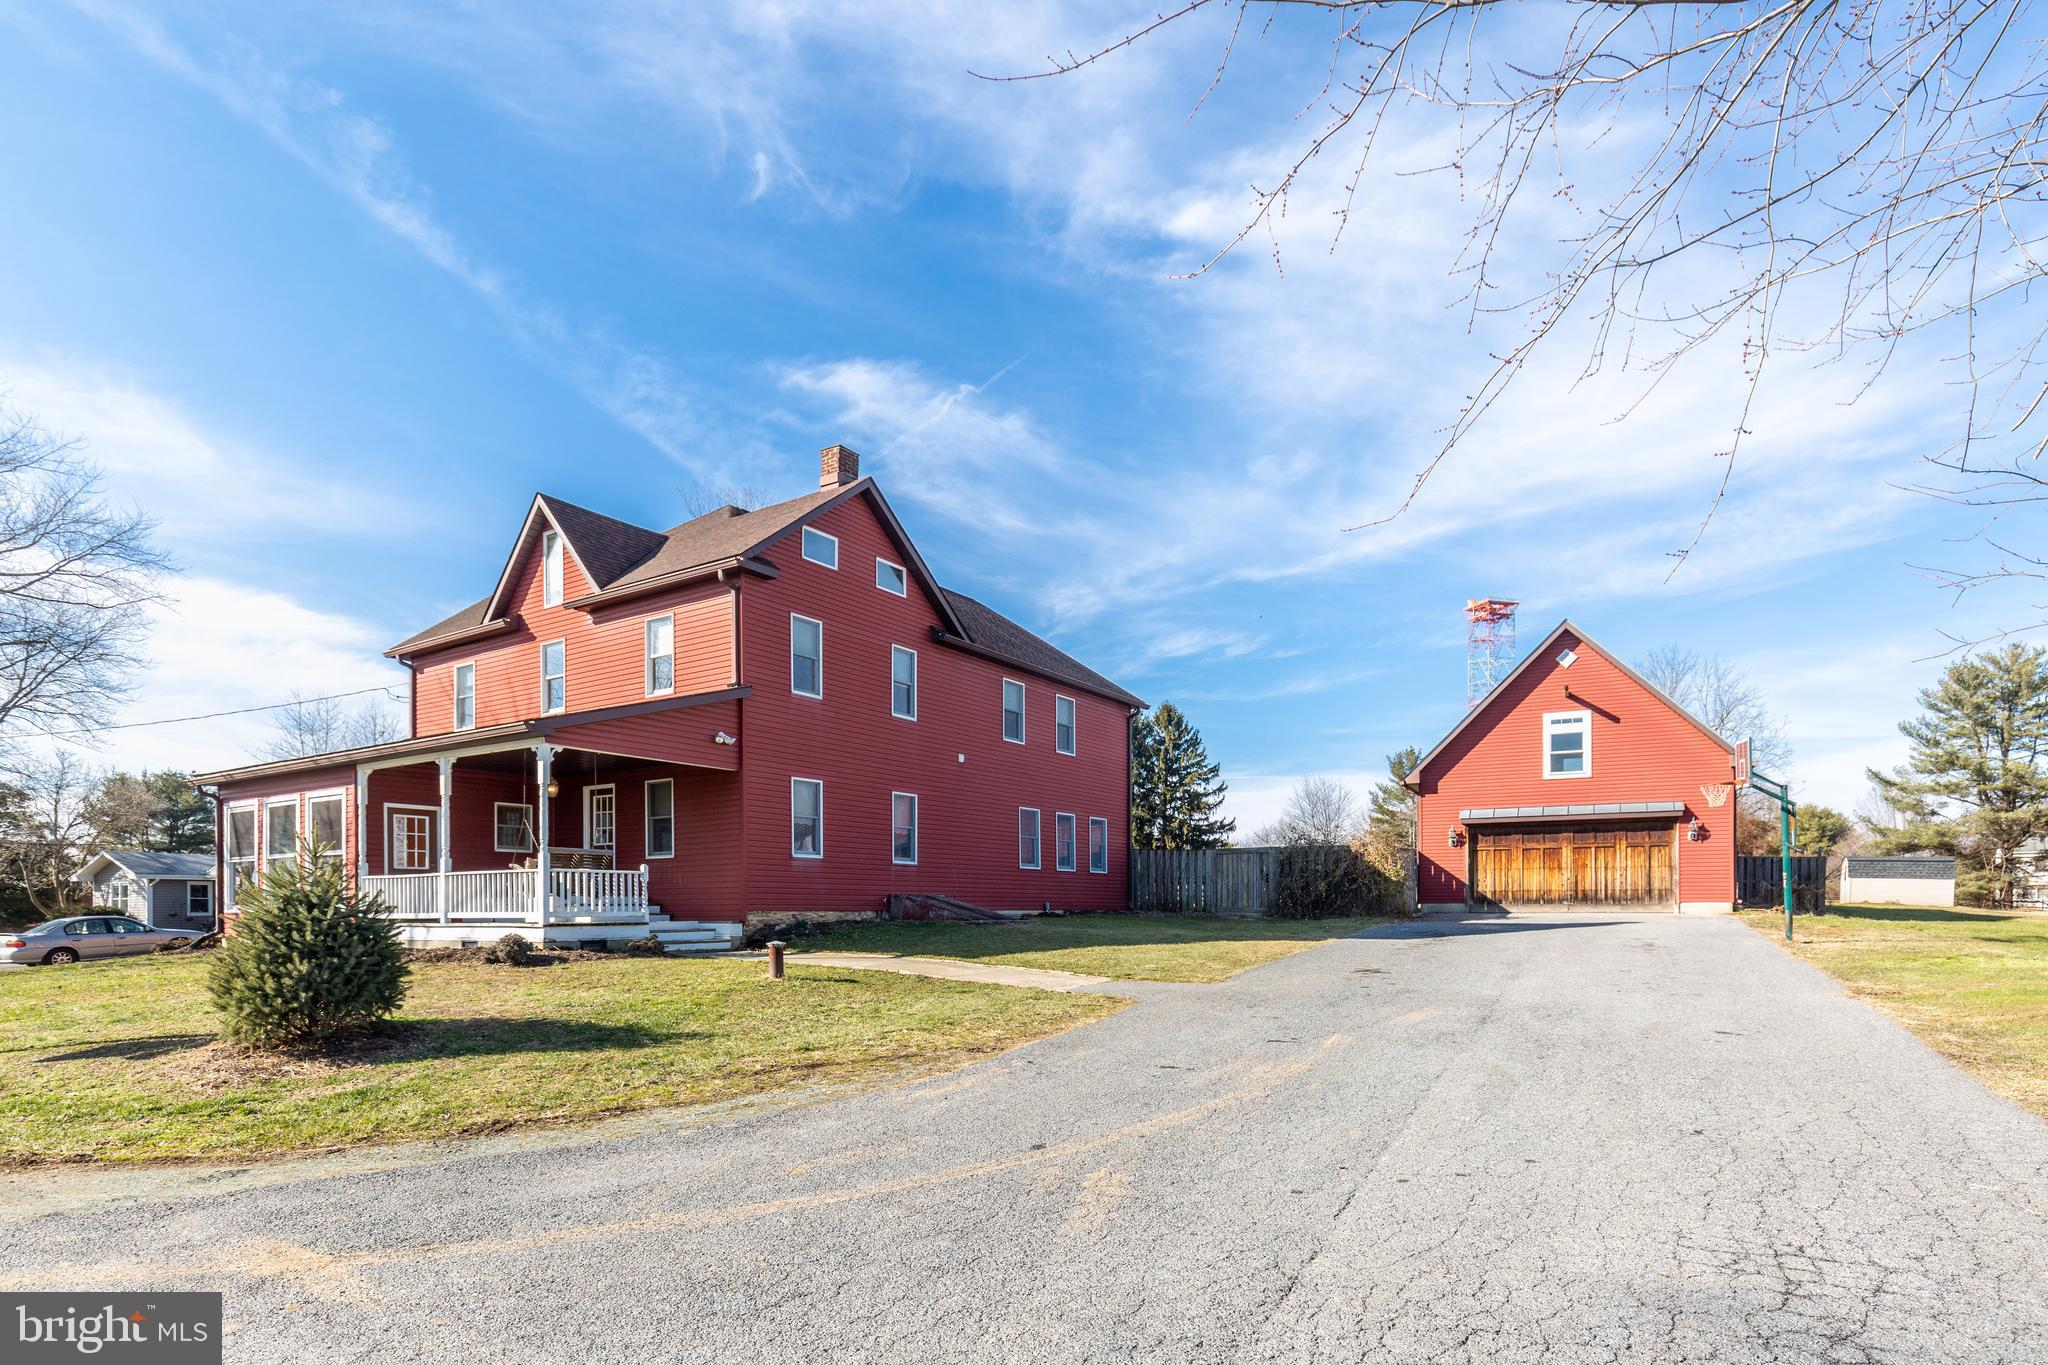 REMODELED FARMHOUSE IN DESIRABLE FINSKBURG LOCATION  WITH OVER 3200+ SQUARE FEET, THIS HOME HAS THE